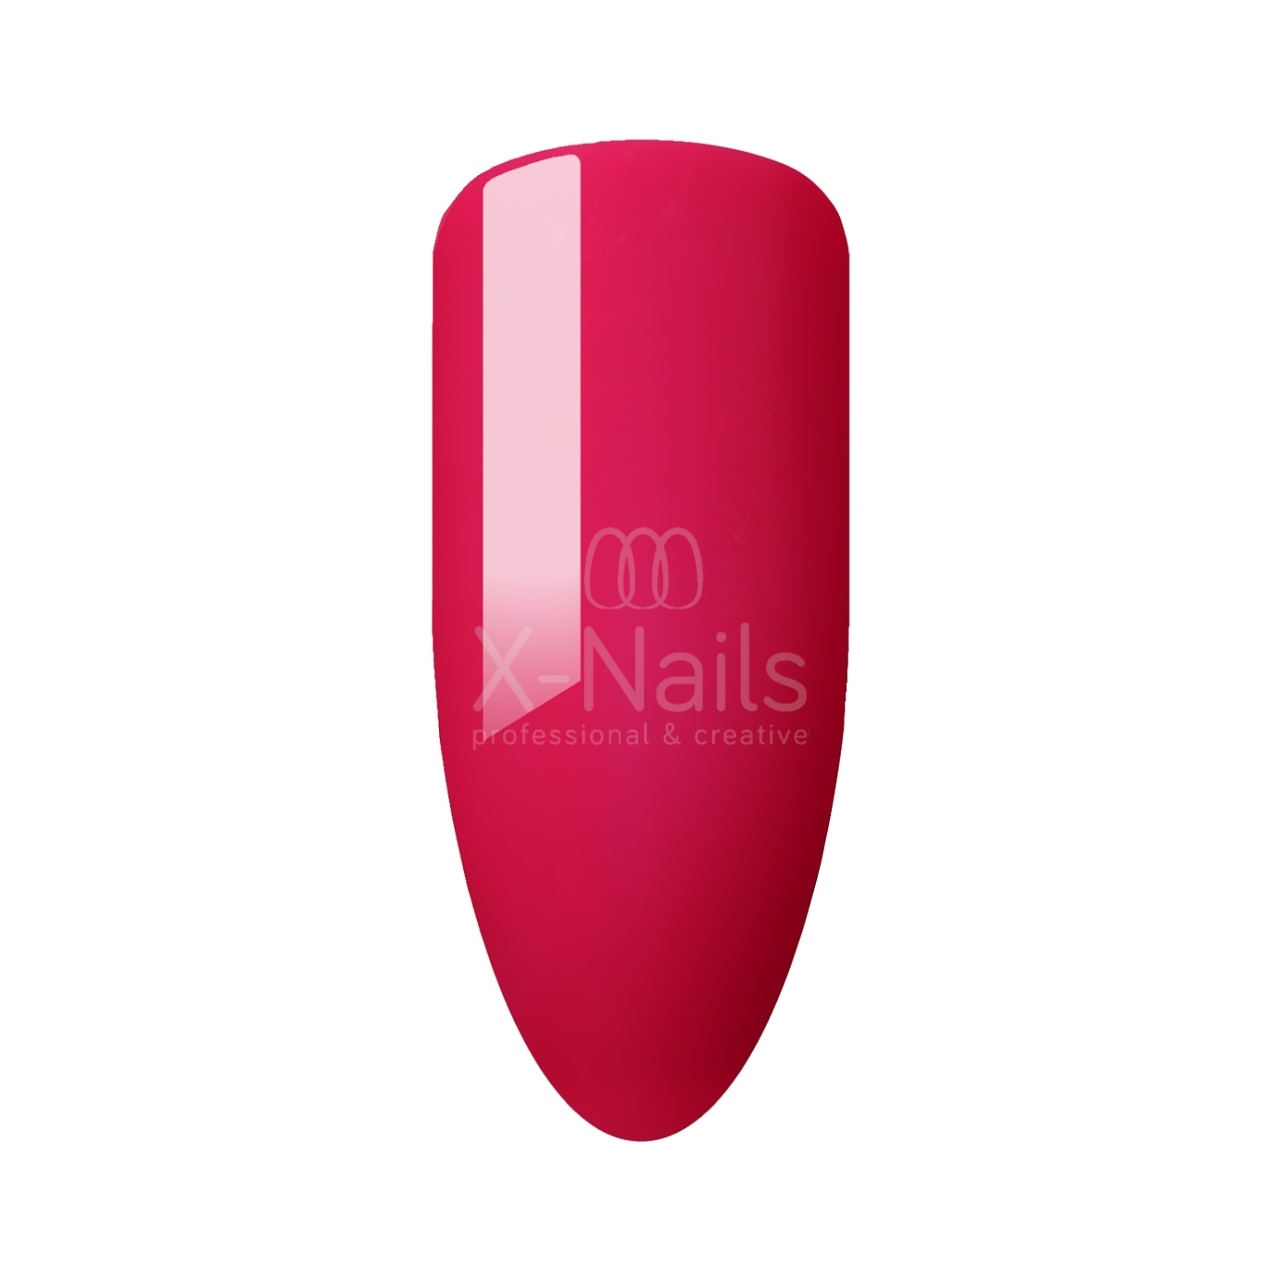 X-NAILS gel lak Amazing Line, 5 ml - RASPY PINK